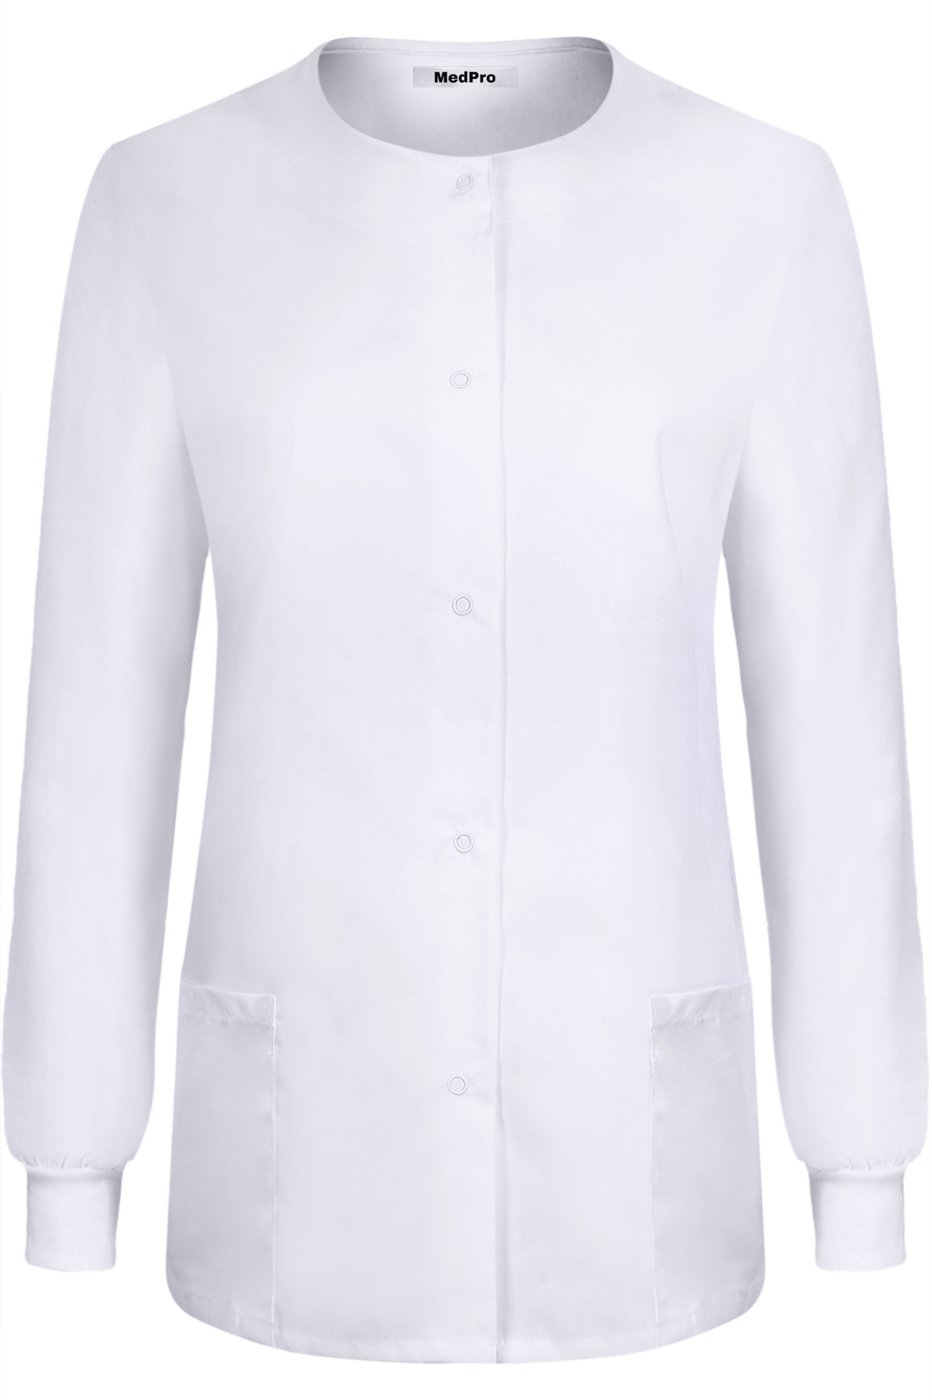 MedPro Women's Medical Scrub Button Down Jacket w/Patch Pocket White L